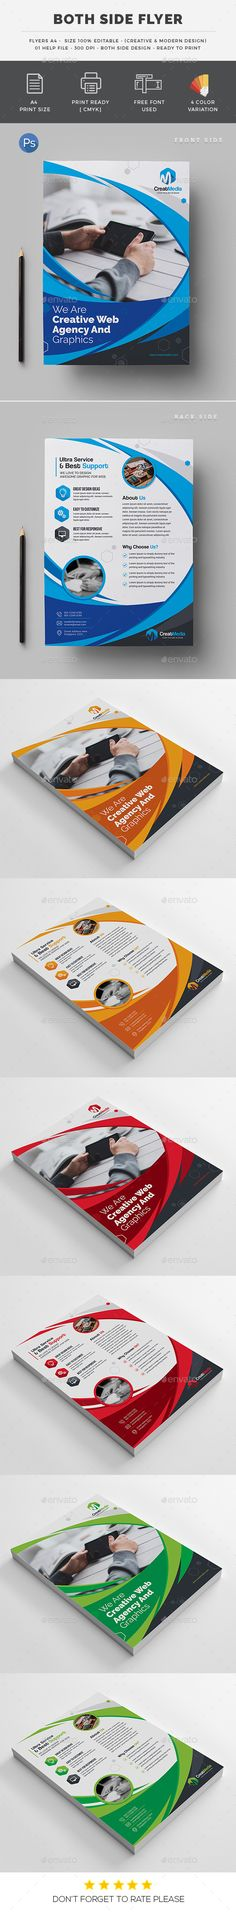 Both Side Flyer by generousart Specification4 CMYK Color Mode 300 DPI Resolution A4 Paper Size 0.25�20in Bleed Side Features Free FontsSmart Object For Replace Ph